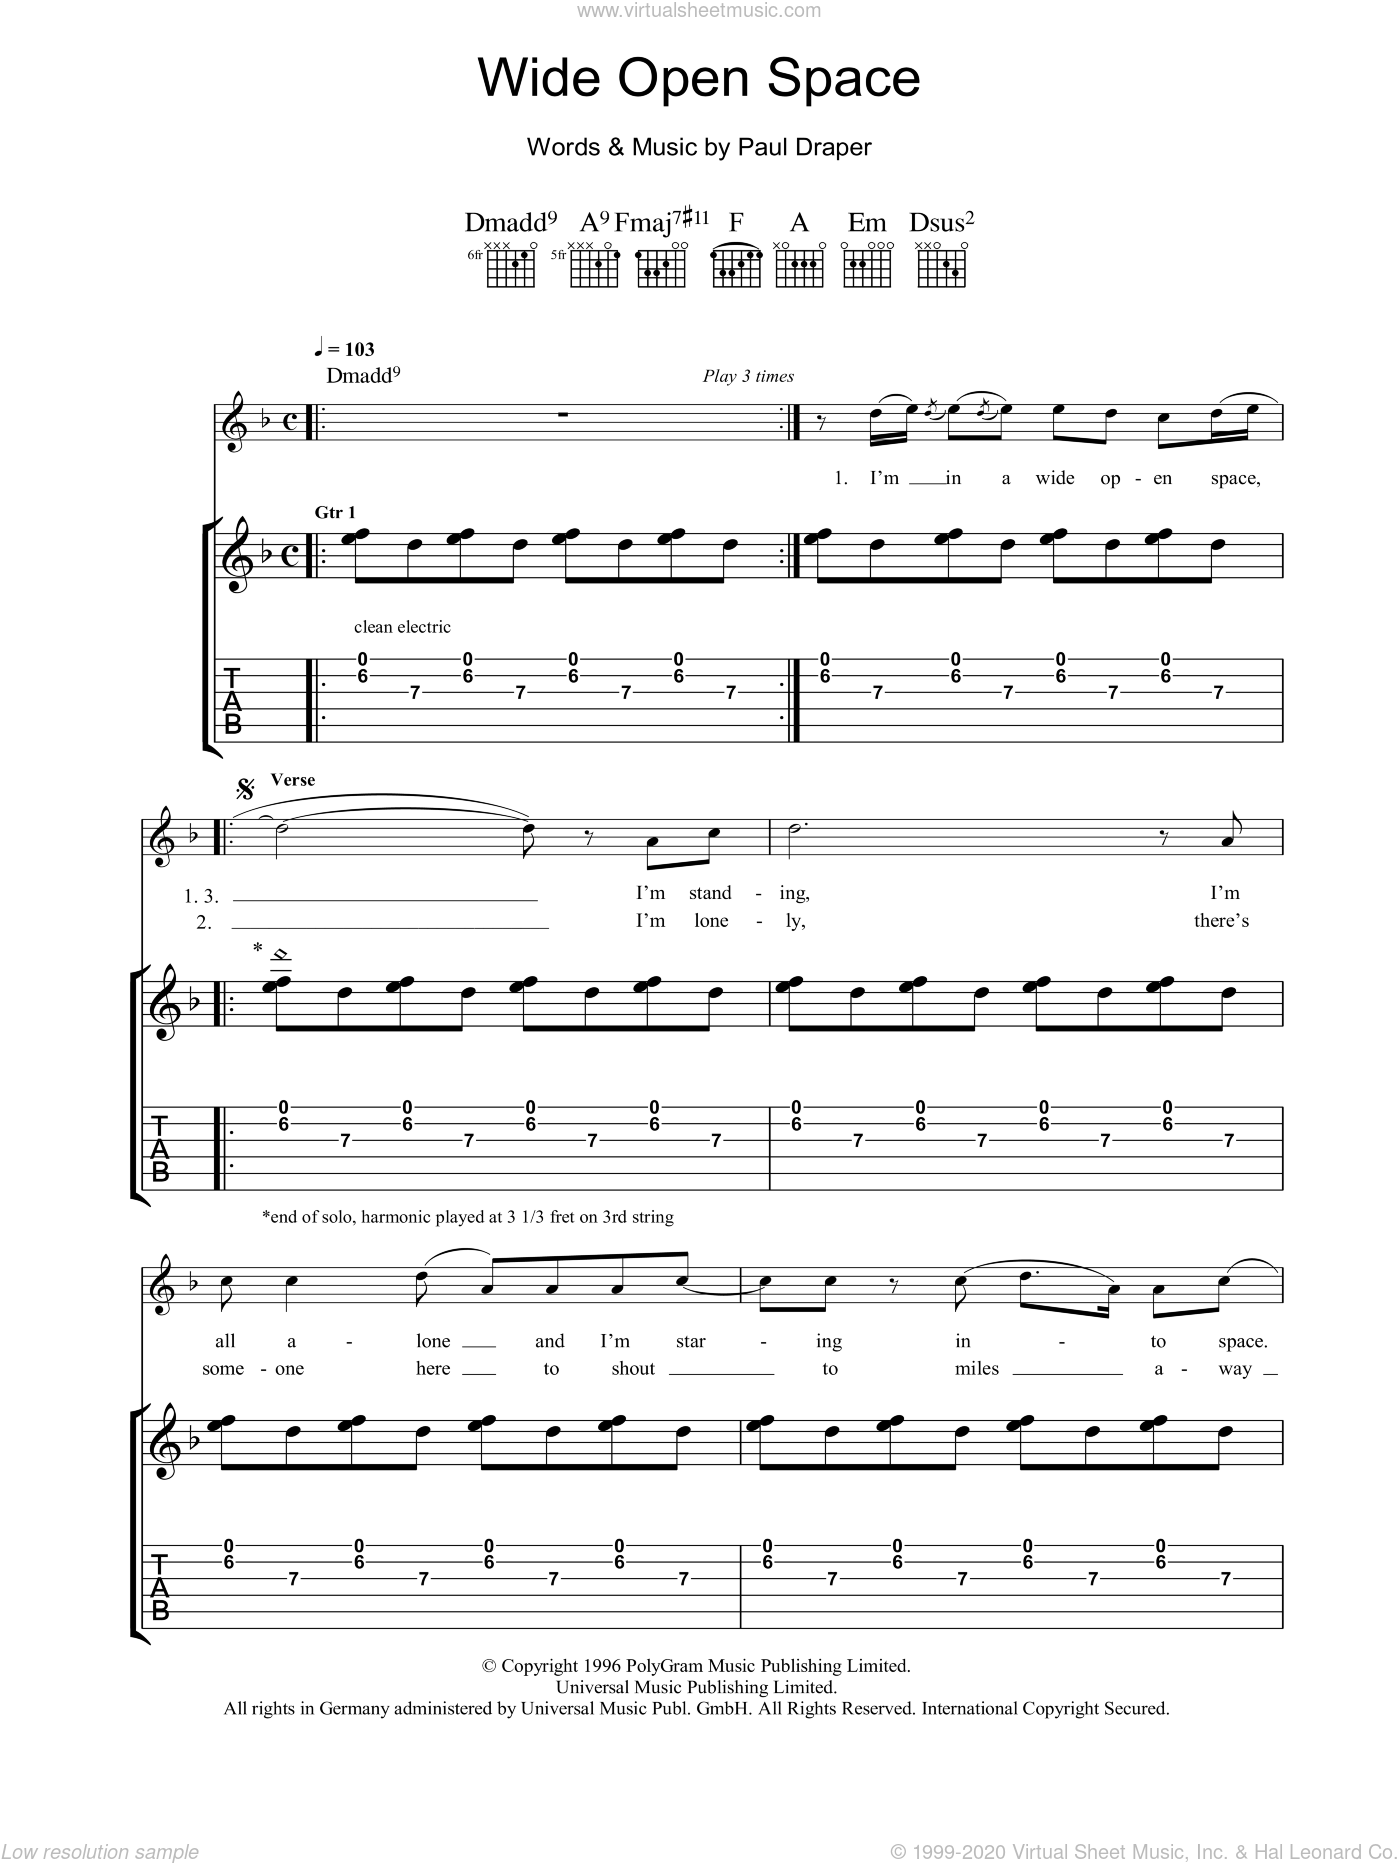 Wide Open Space sheet music for guitar (tablature) by Paul Draper